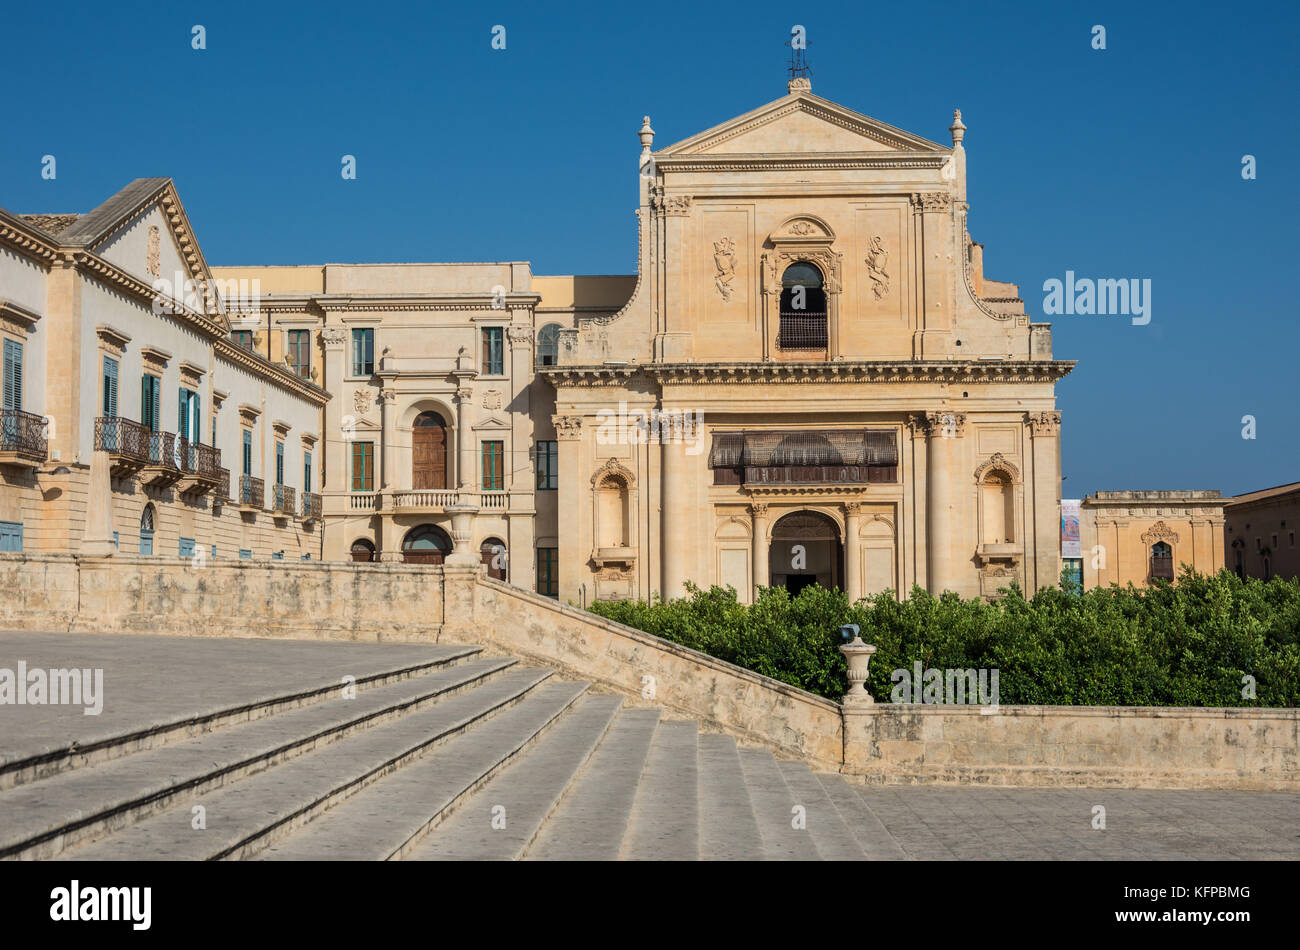 Noto, Italy - September 01, 2017: Basilica of saint savior (san salvatore) in Noto. View from stairway of cathedral - Stock Image